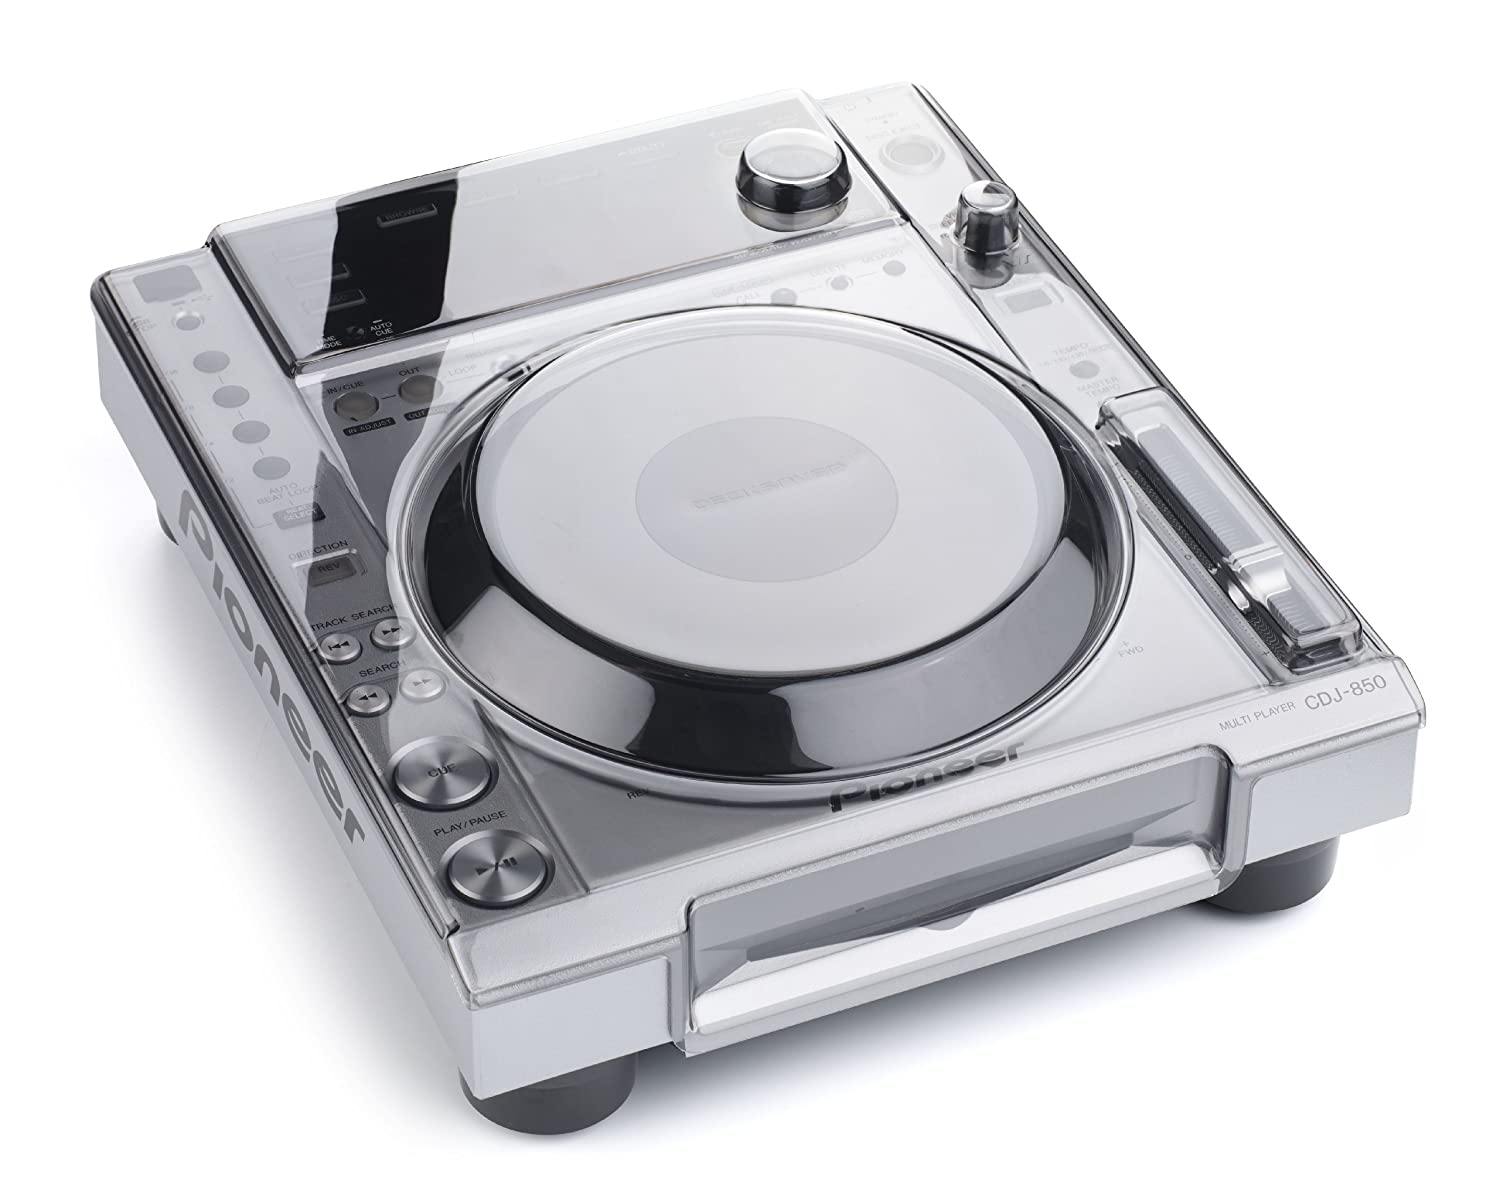 Decksaver Protective Cover for Pioneer CDJ-850 DS-PC-CDJ850 78063-A